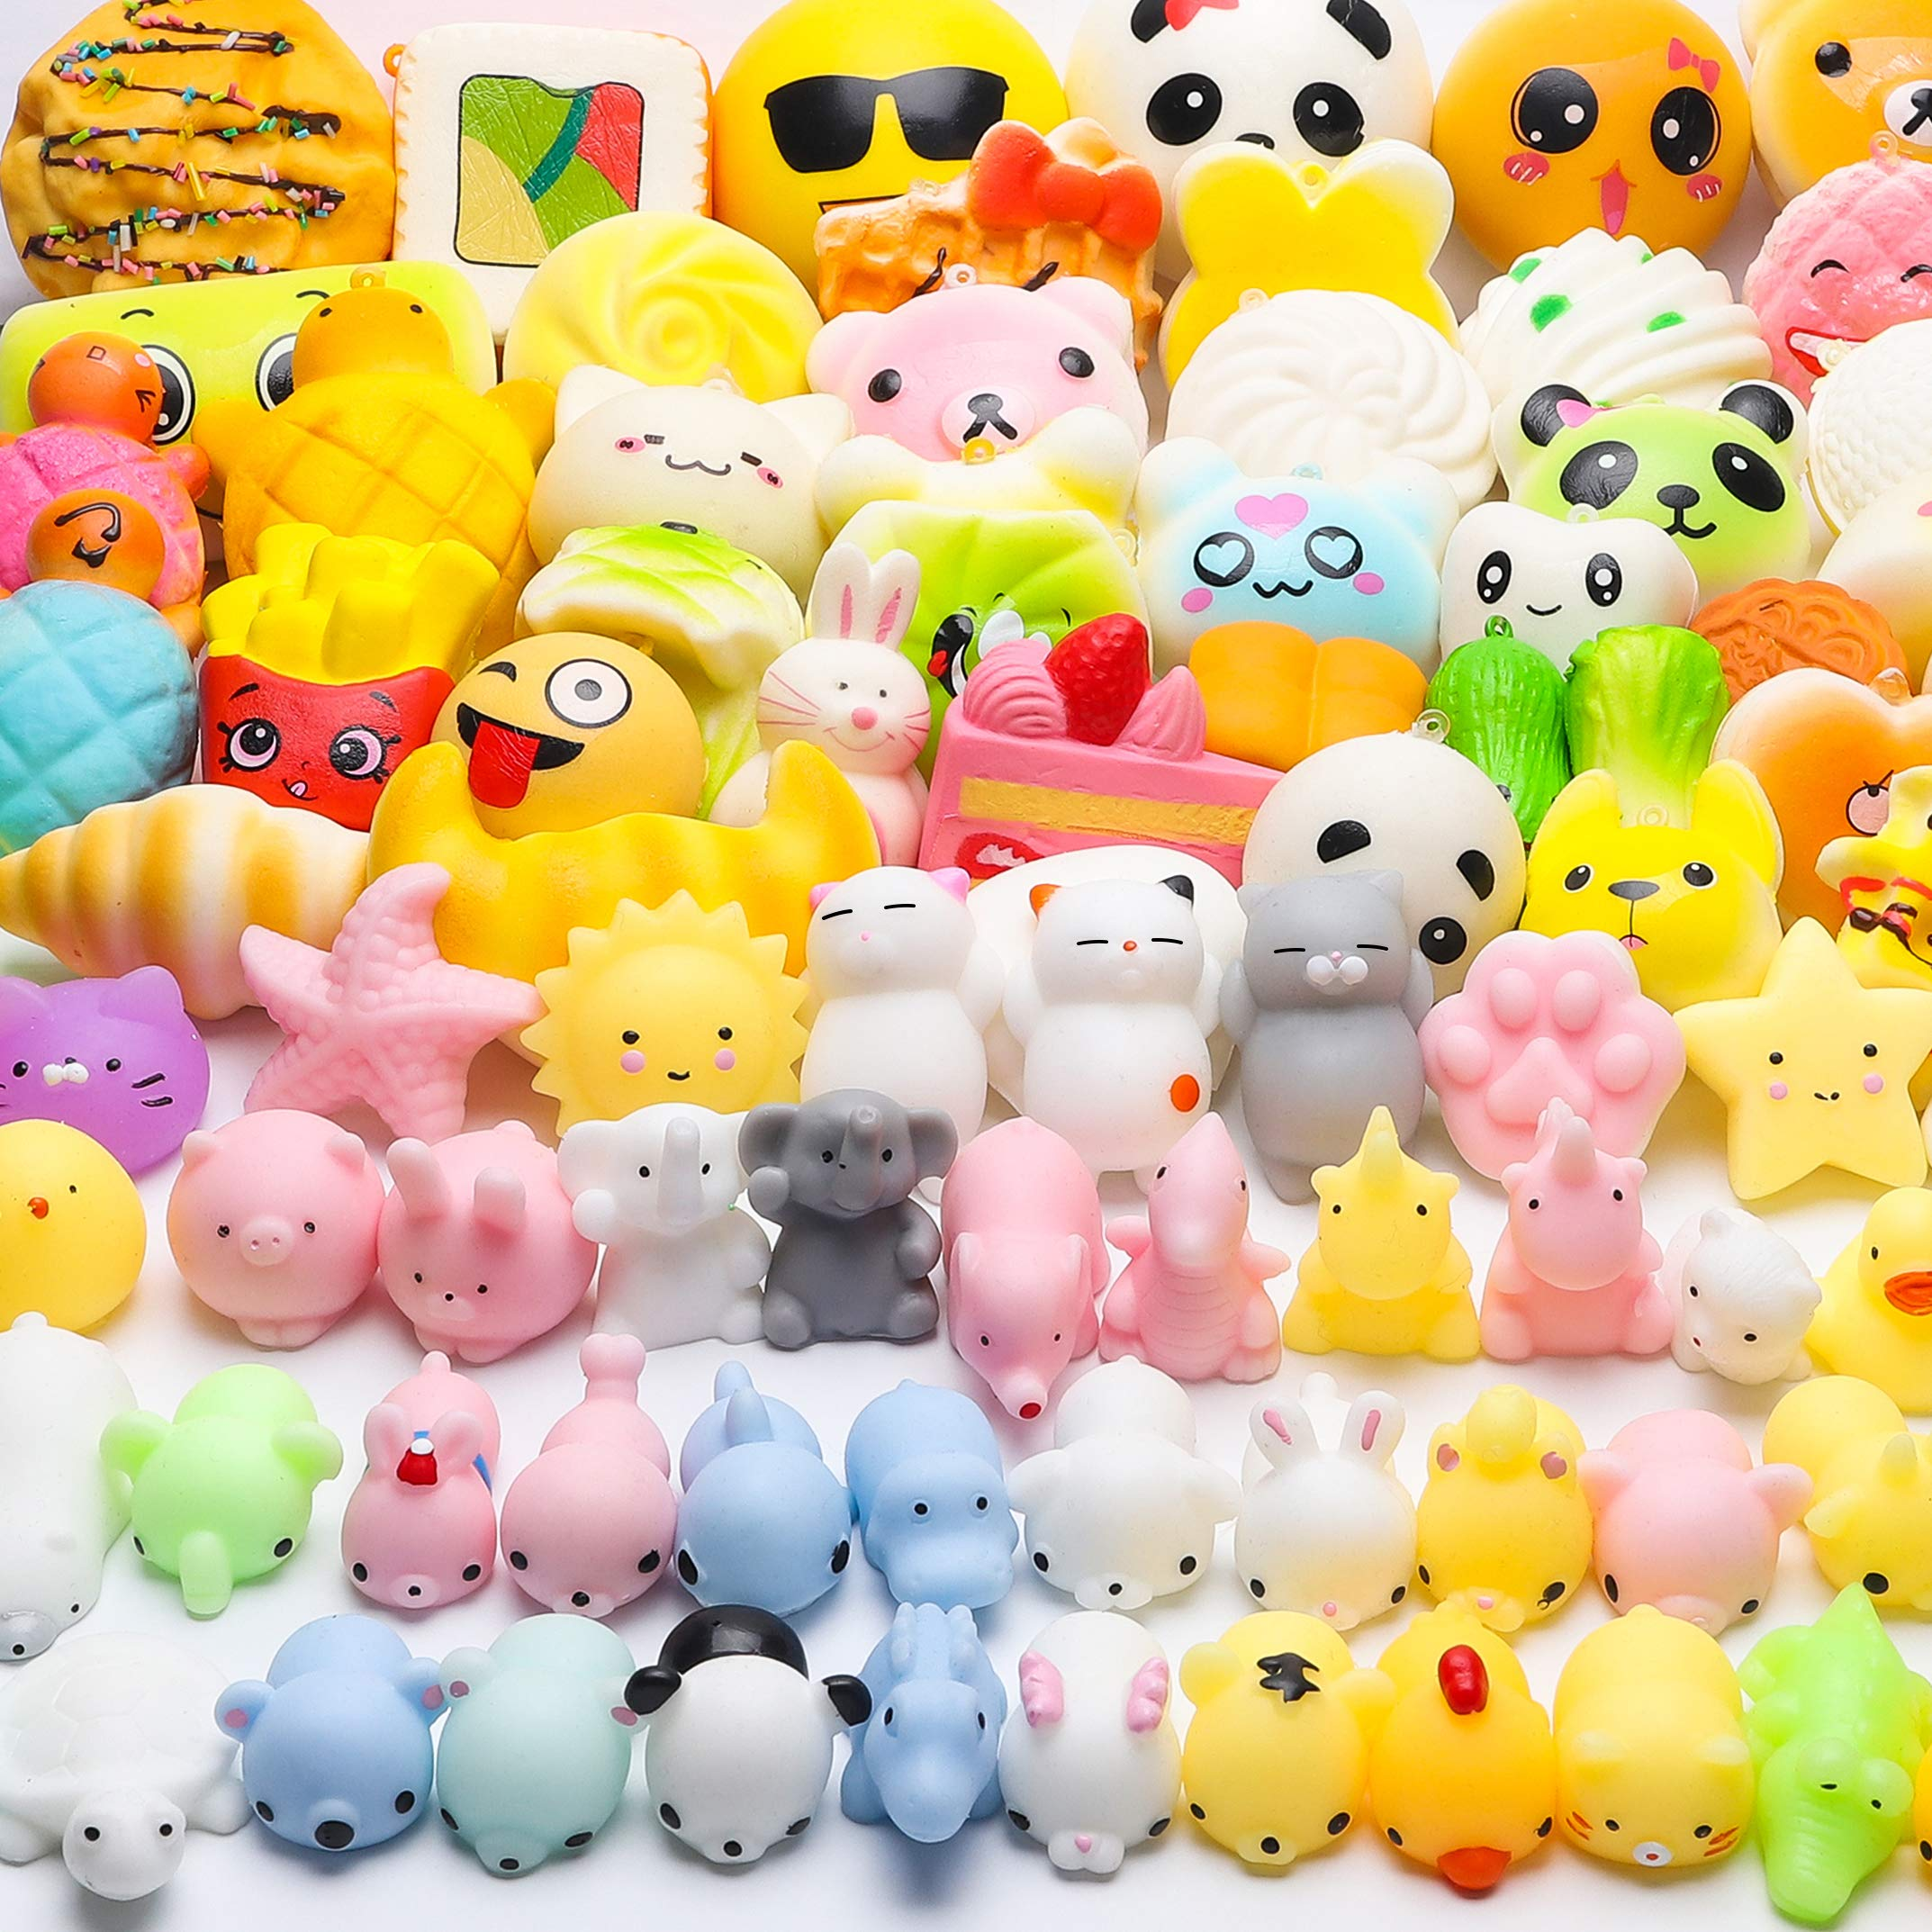 WATINC Random 70 Pcs Squishies, Birthday Gifts for Kids Party Favors, 30 Pcs Kawaii Simulation Bread Squishies 40 Pcs Mochi Squishies Cat Panda Goodie Bags Egg Fillers, Keychain Phone Straps by WATINC (Image #7)